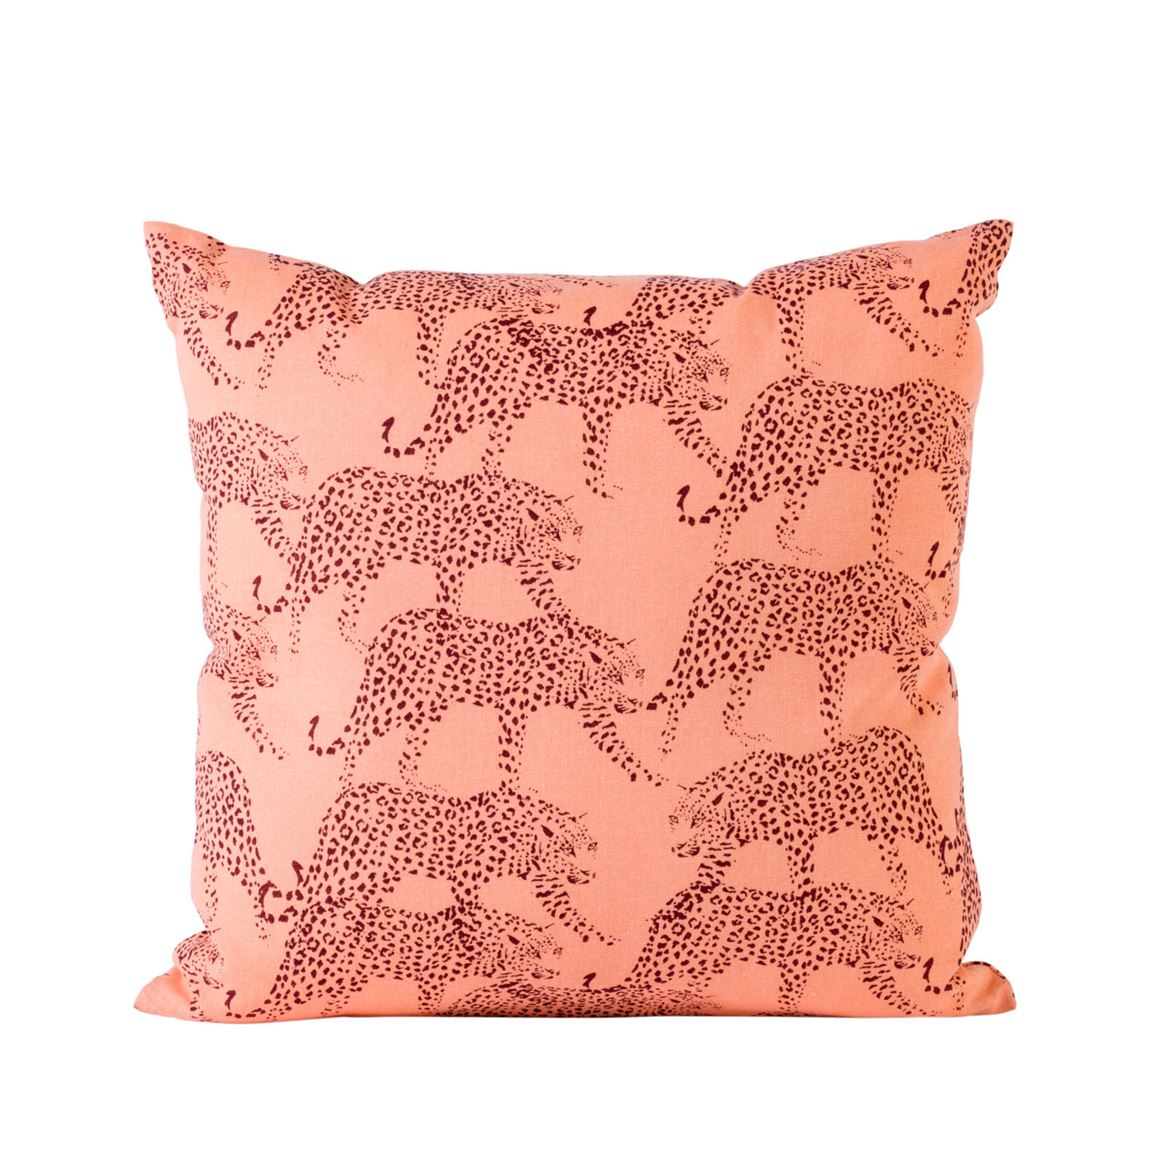 JAGUAR Coussin orange Larg. 40 x Long. 40 cm_jaguar-coussin-orange-larg--40-x-long--40-cm